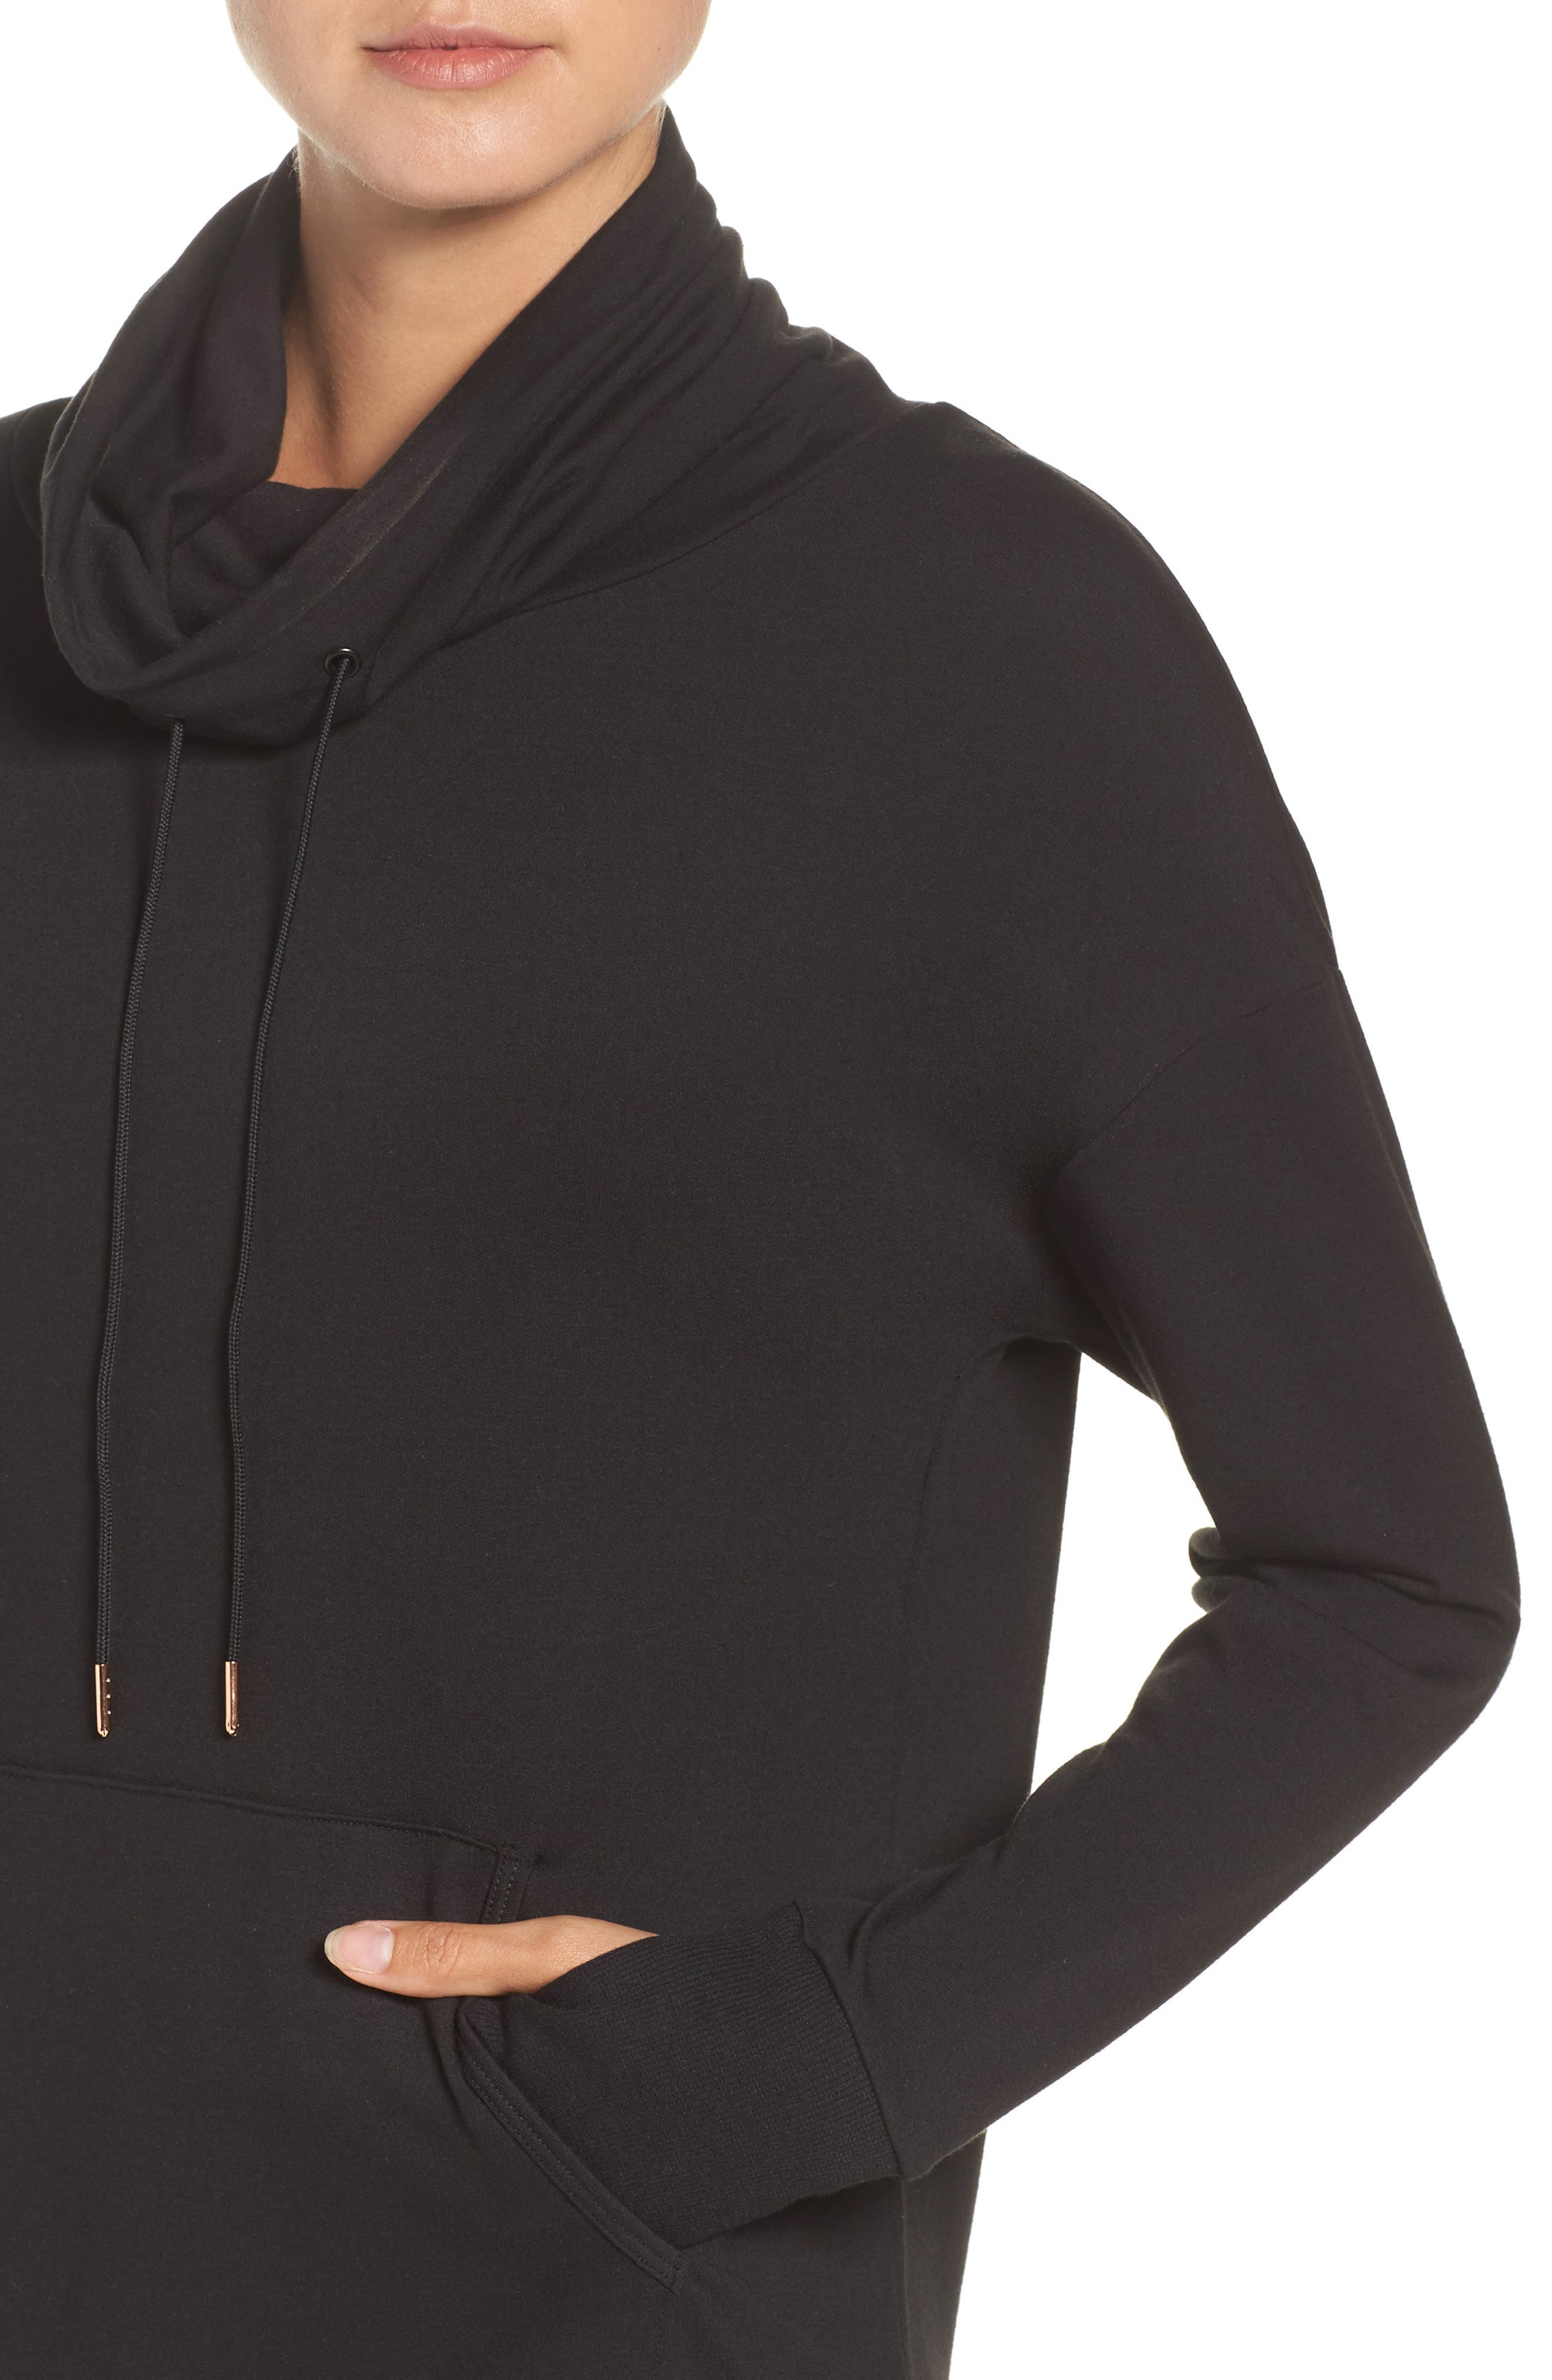 Jersey Pullover,                             Alternate thumbnail 4, color,                             001